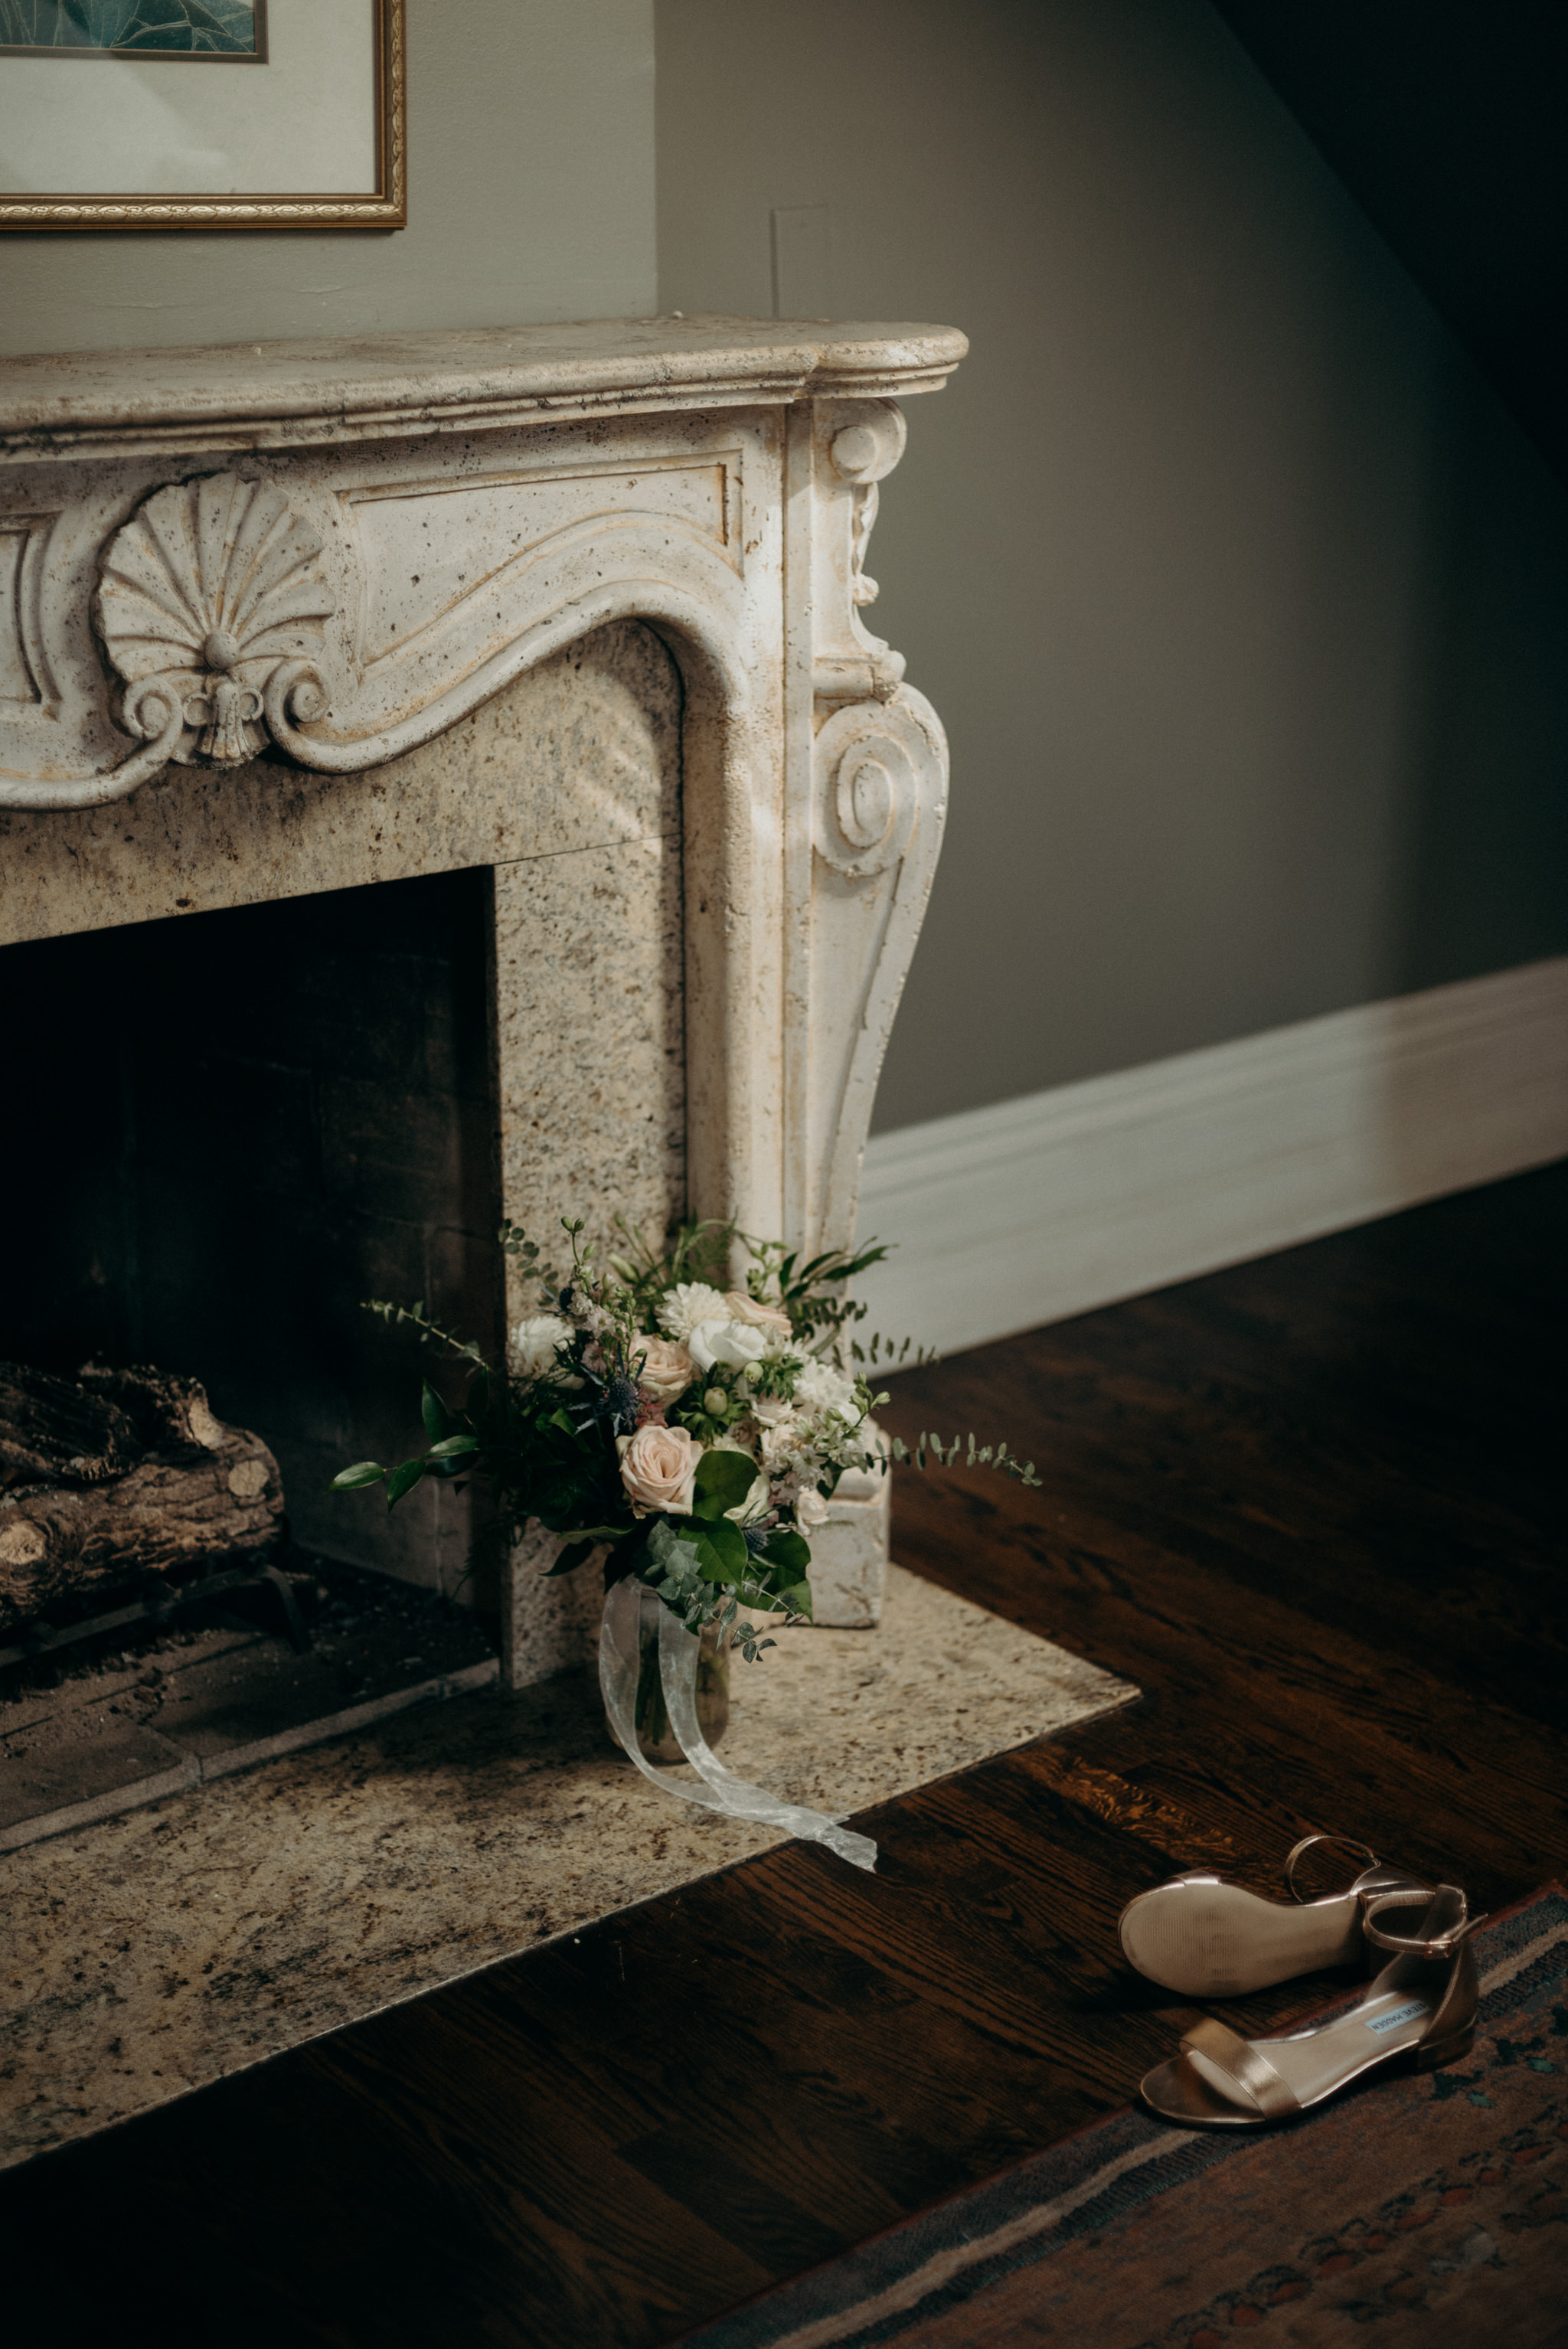 wedding bouquet and shoes on ground in front of elegant vintage fireplace